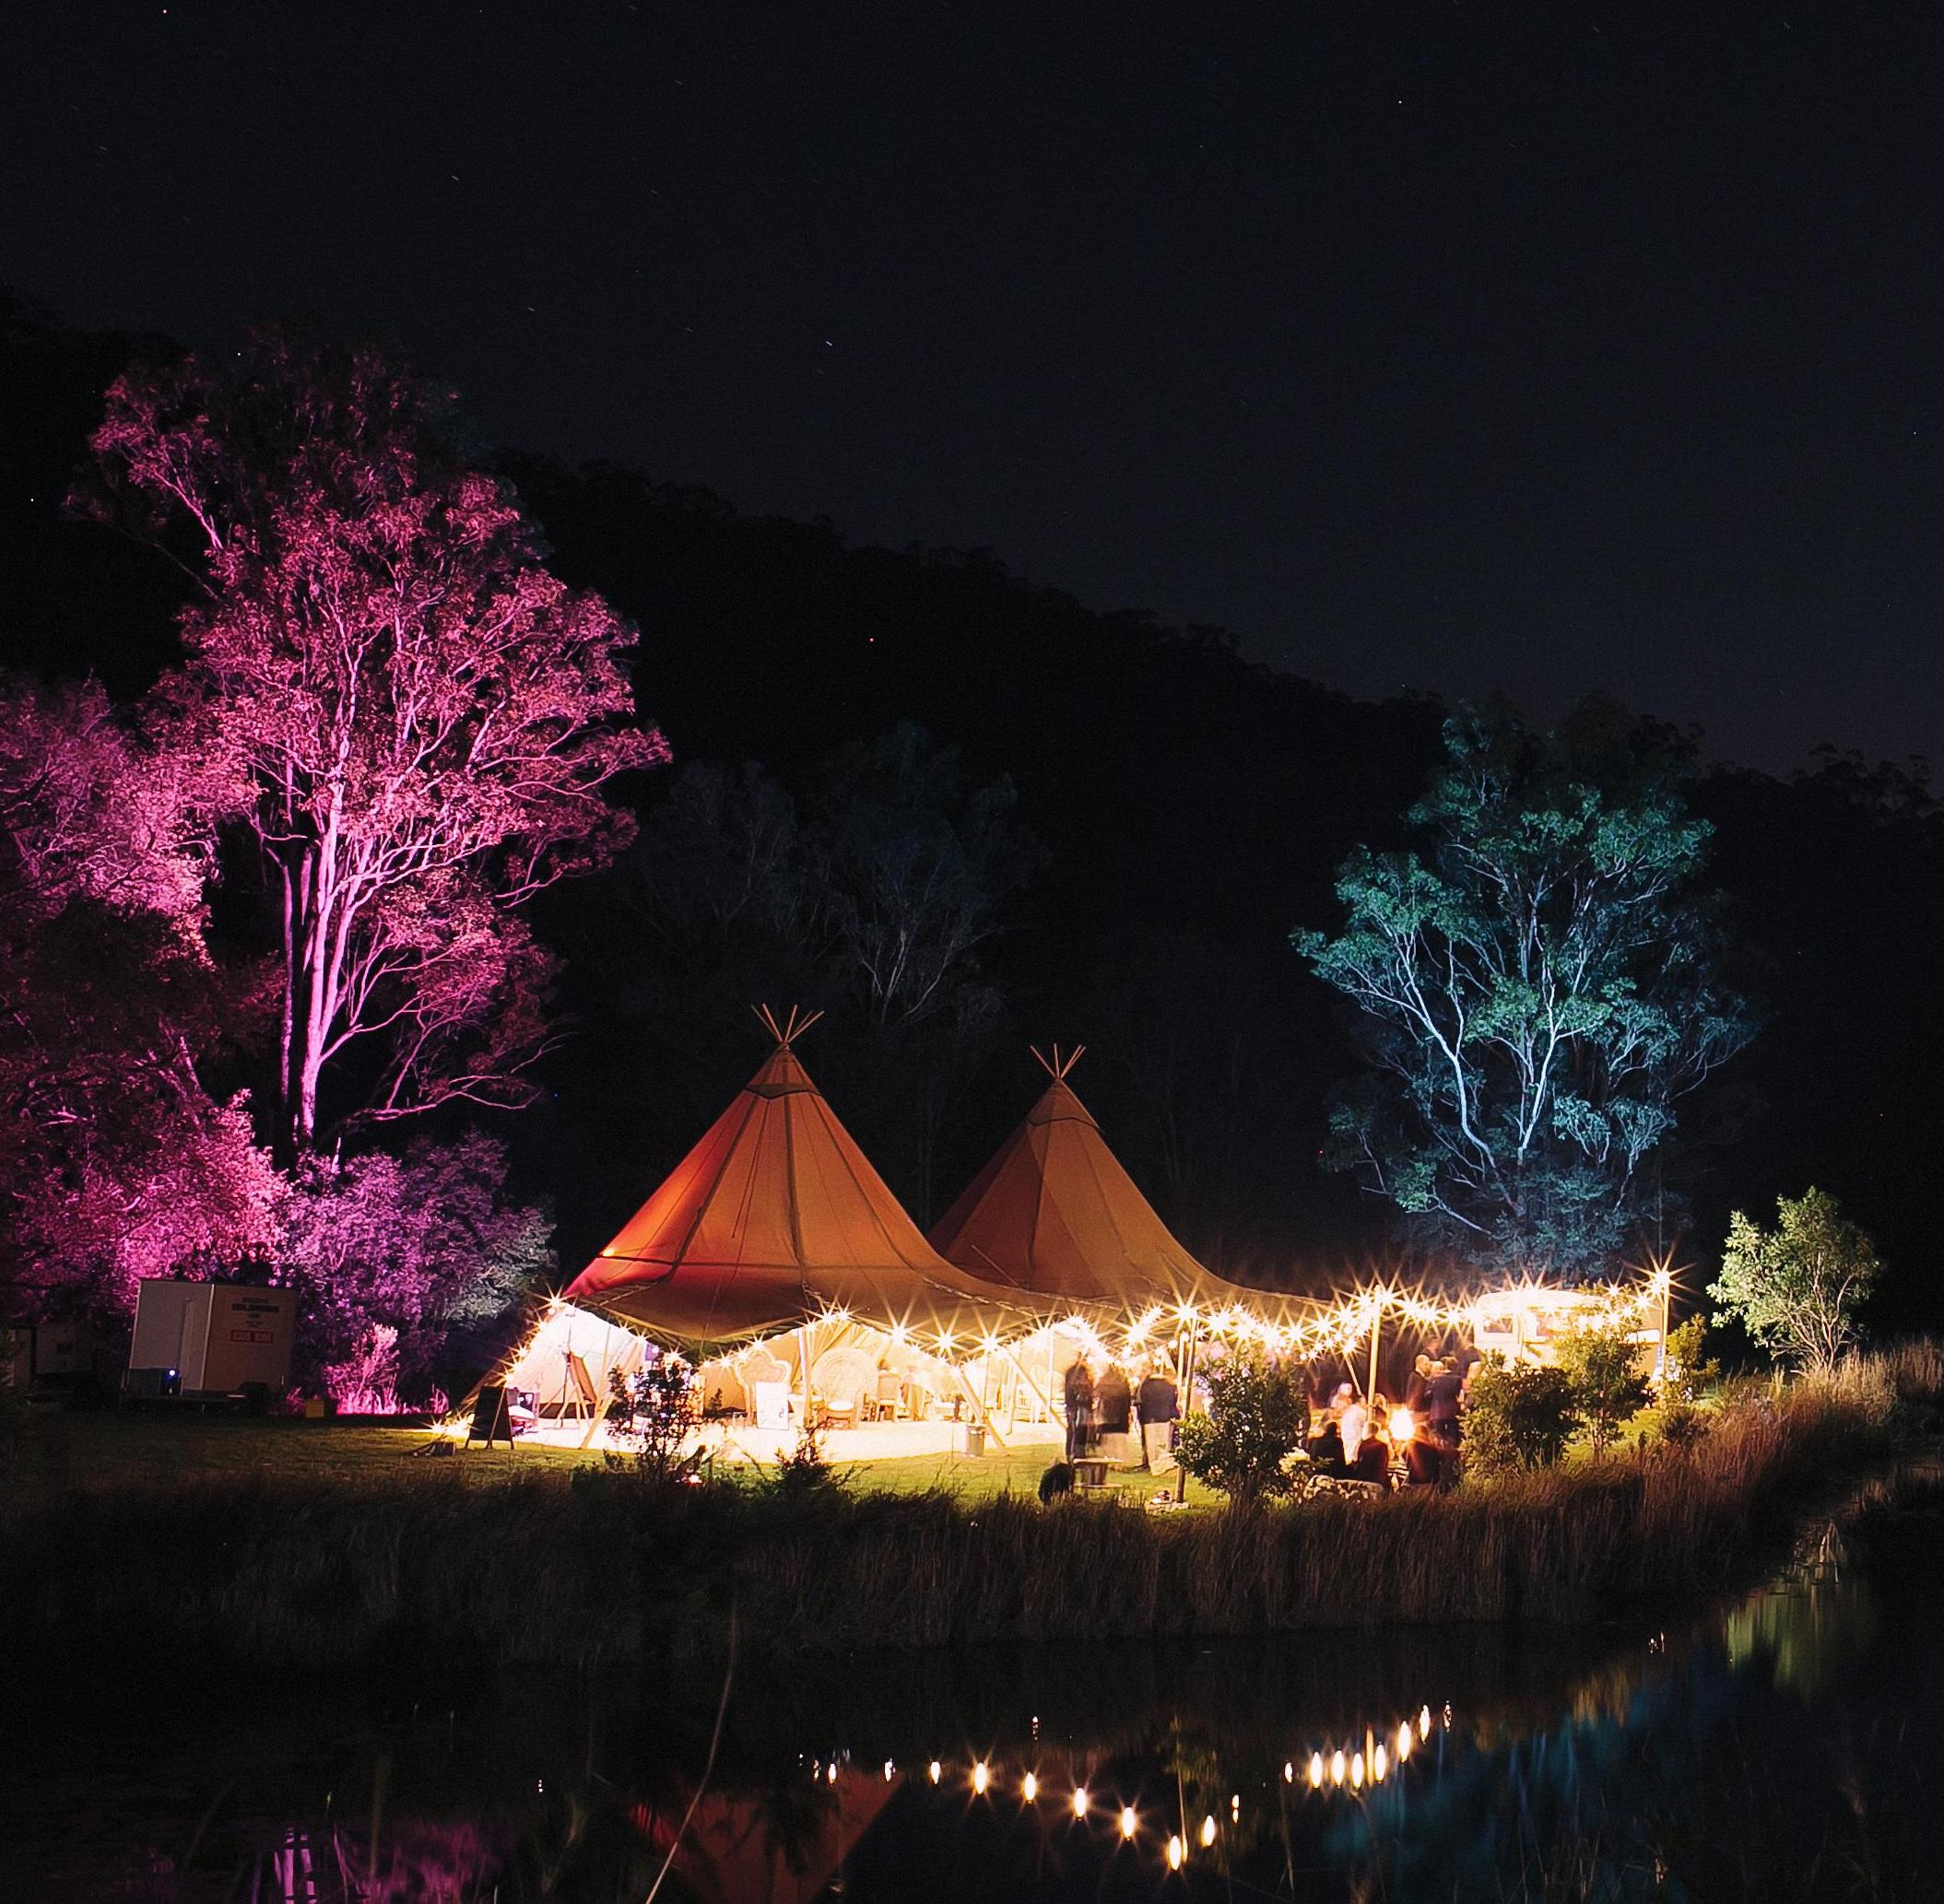 farmhouse numinbah, gold coast hinterland wedding, gold coast wedding, gold coast tipis, marquee hire, event hire, marquees, boho wedding